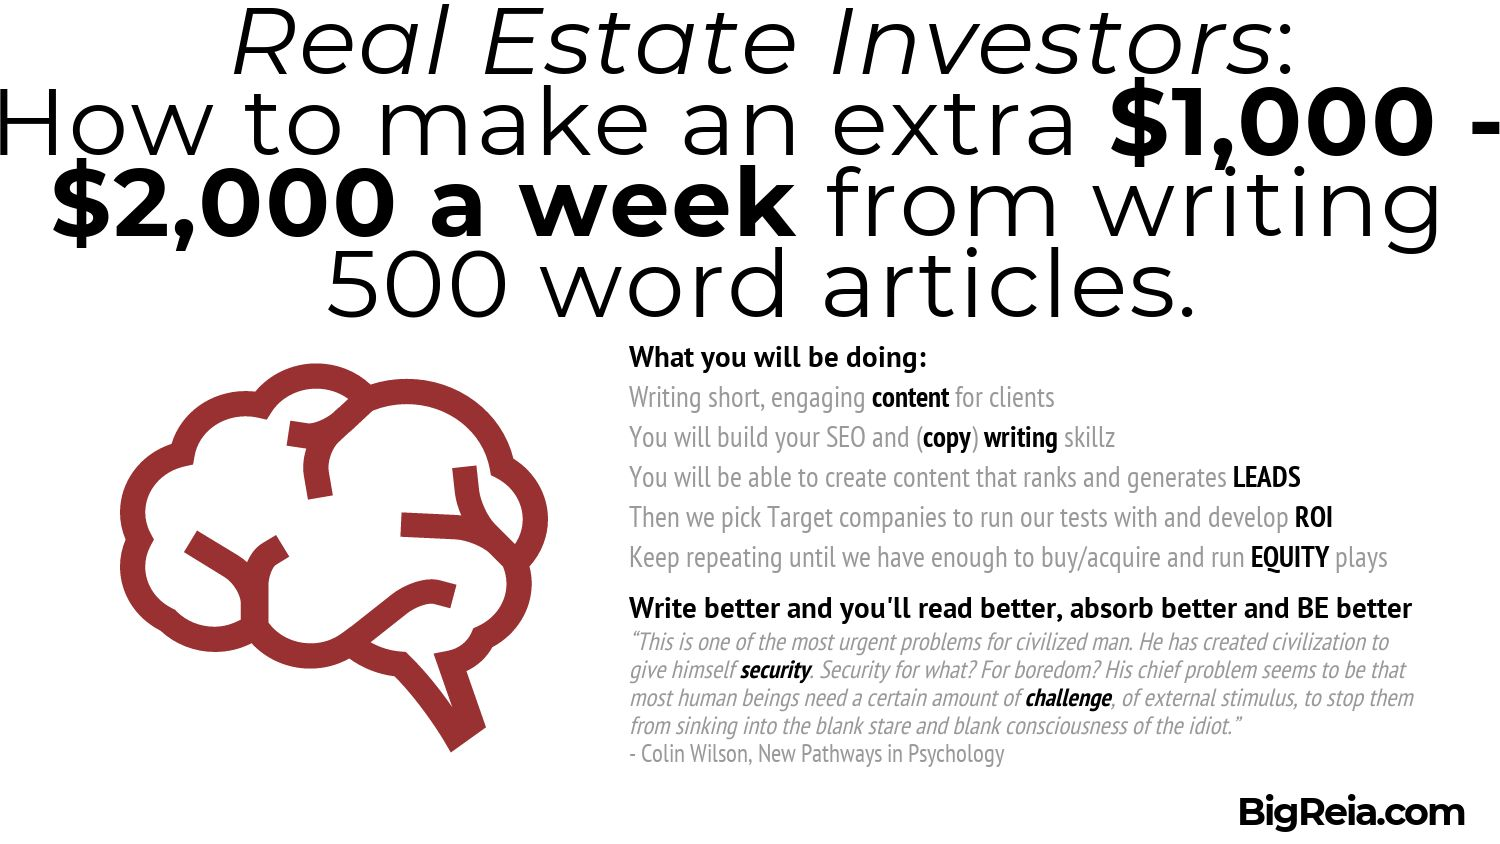 Real estate investors need to improve their copywriting skills